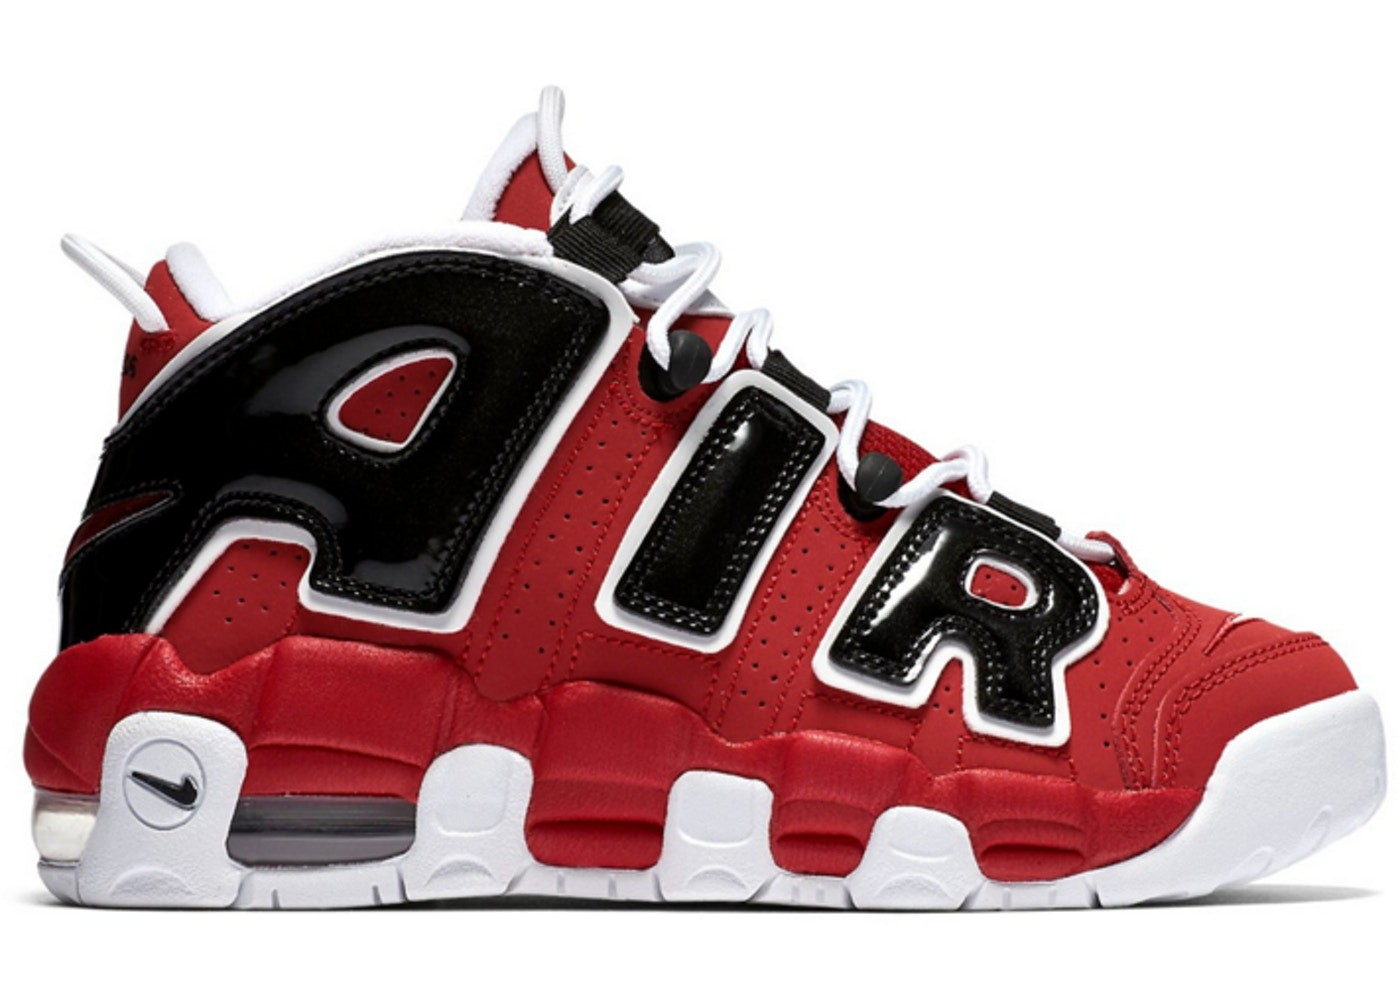 Nike Air More Uptempo GS Rood/Wit-Zwart 415082-600